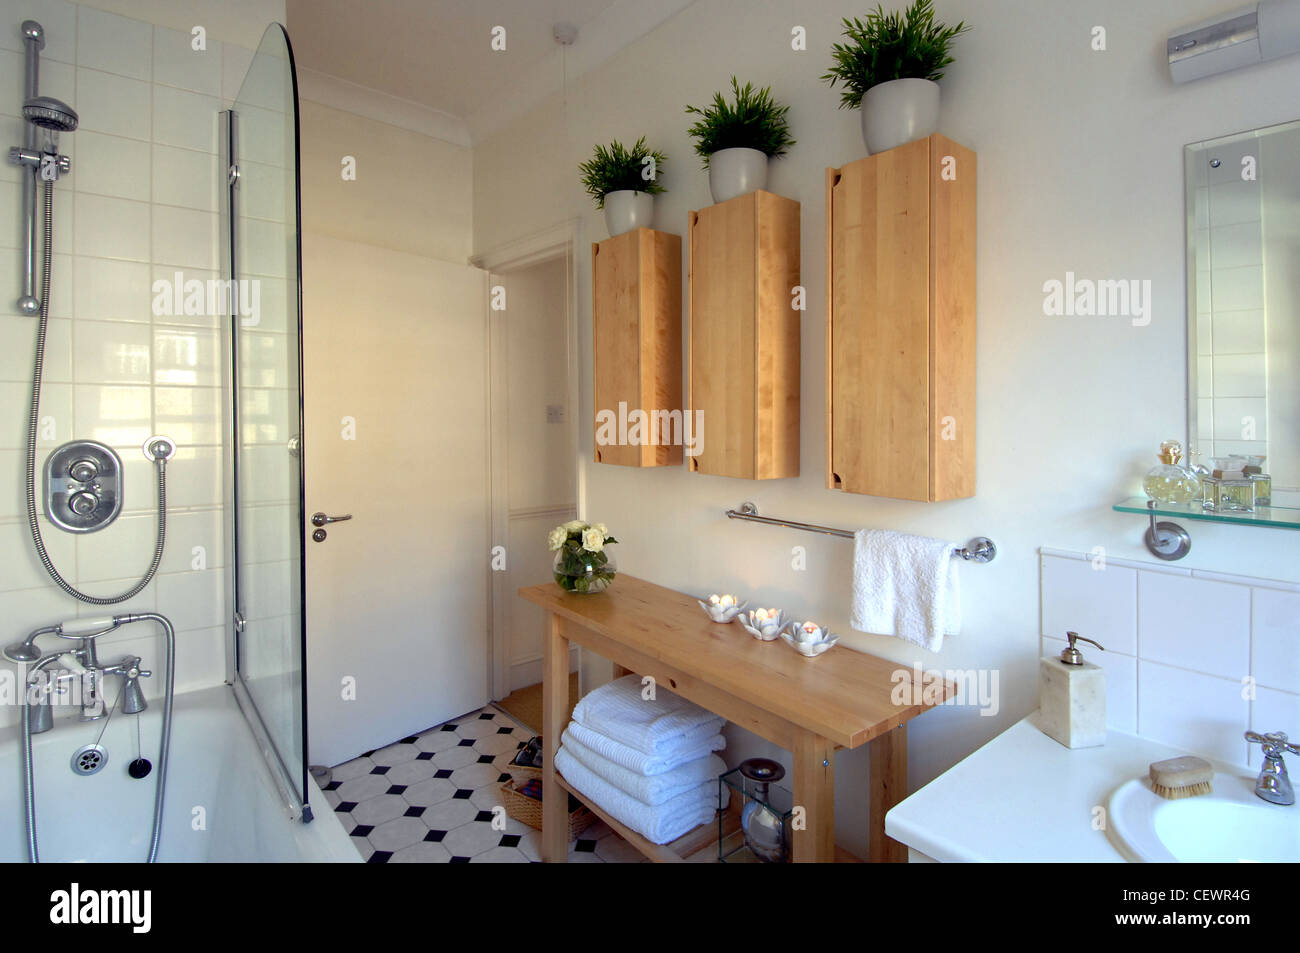 Chelsea Appartment Bathroom Interiwith White Tiled Walls, Tiled Floor, Wall  Cabinets Potted Plants On Top And Shower Above